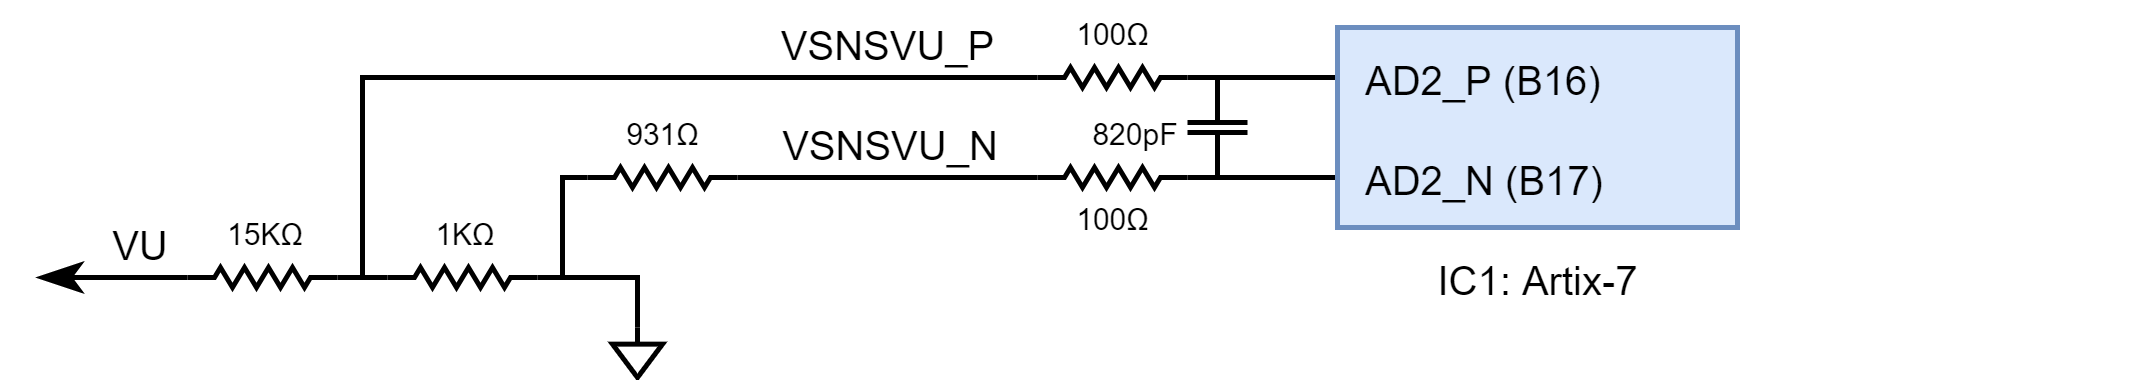 Figure 3.1.1 Monitoring External Supply Voltage